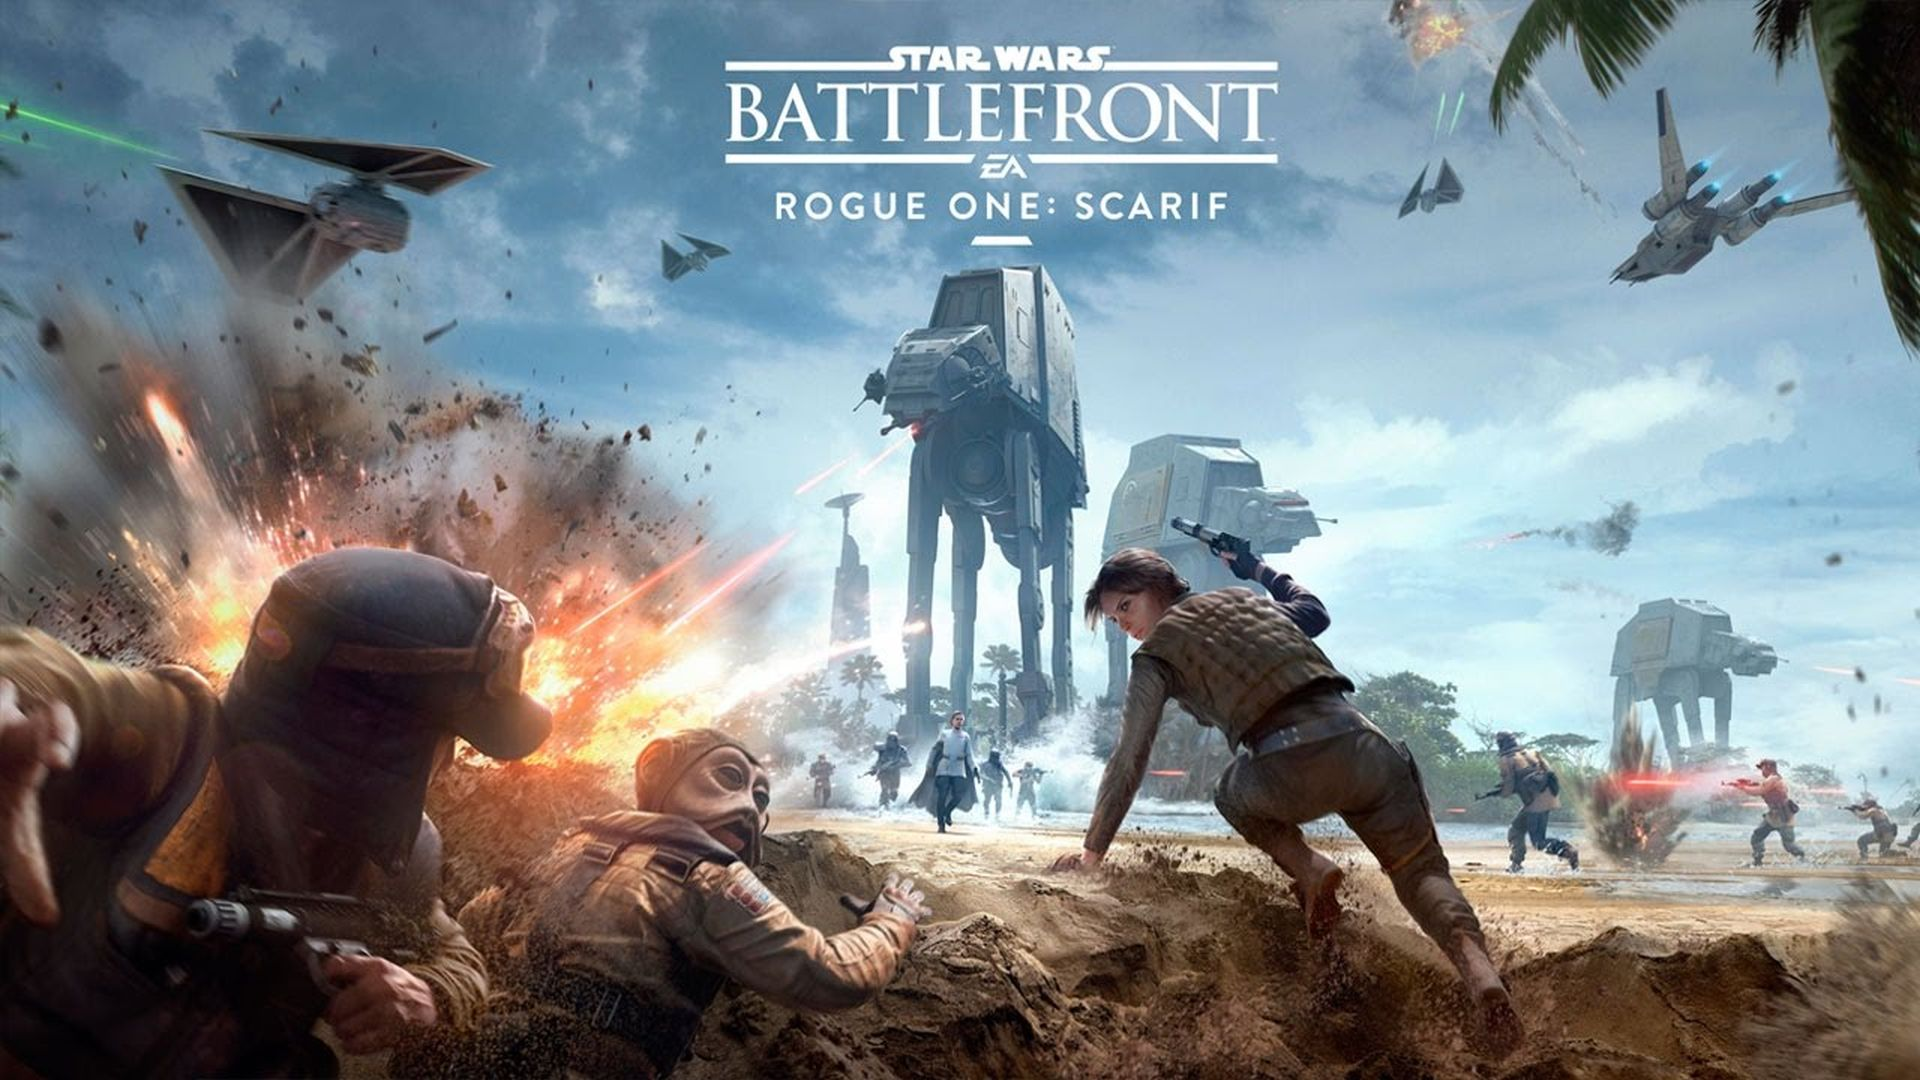 Star Wars Battlefront 2 - The Battle of Scarif